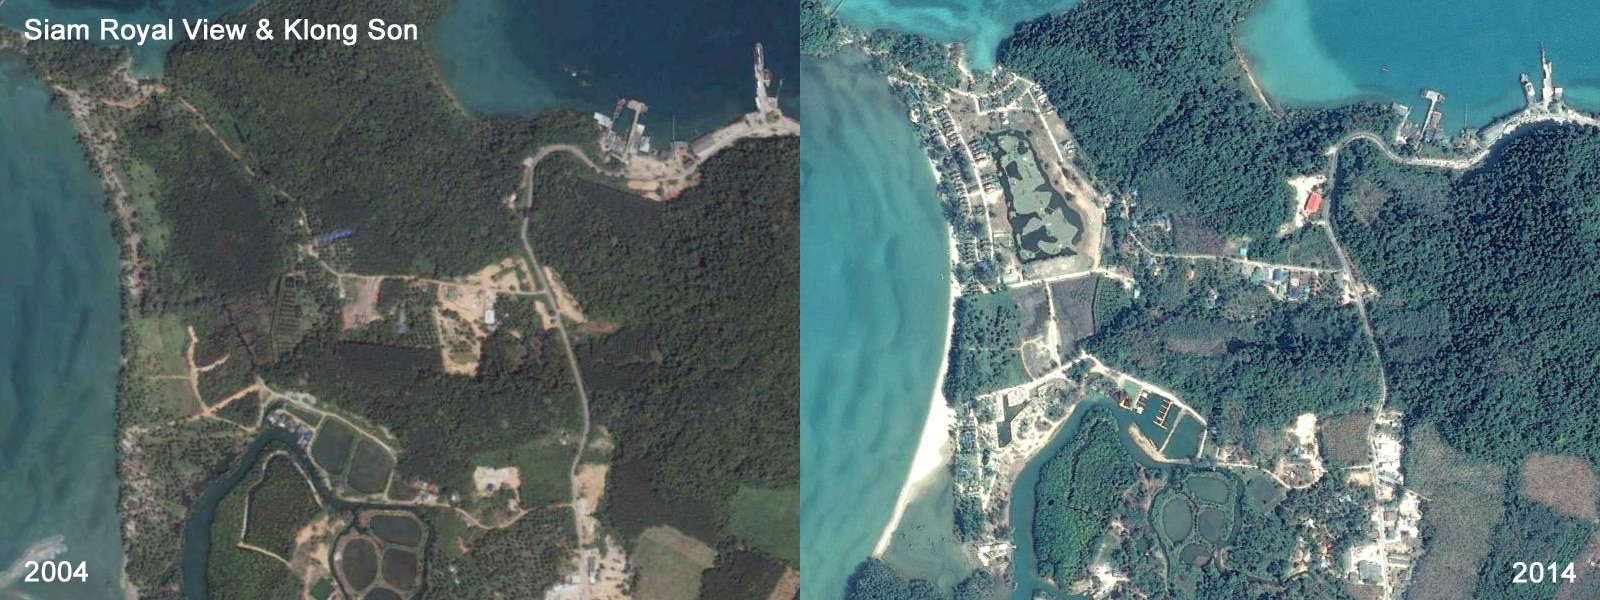 View comparison - Koh Chang